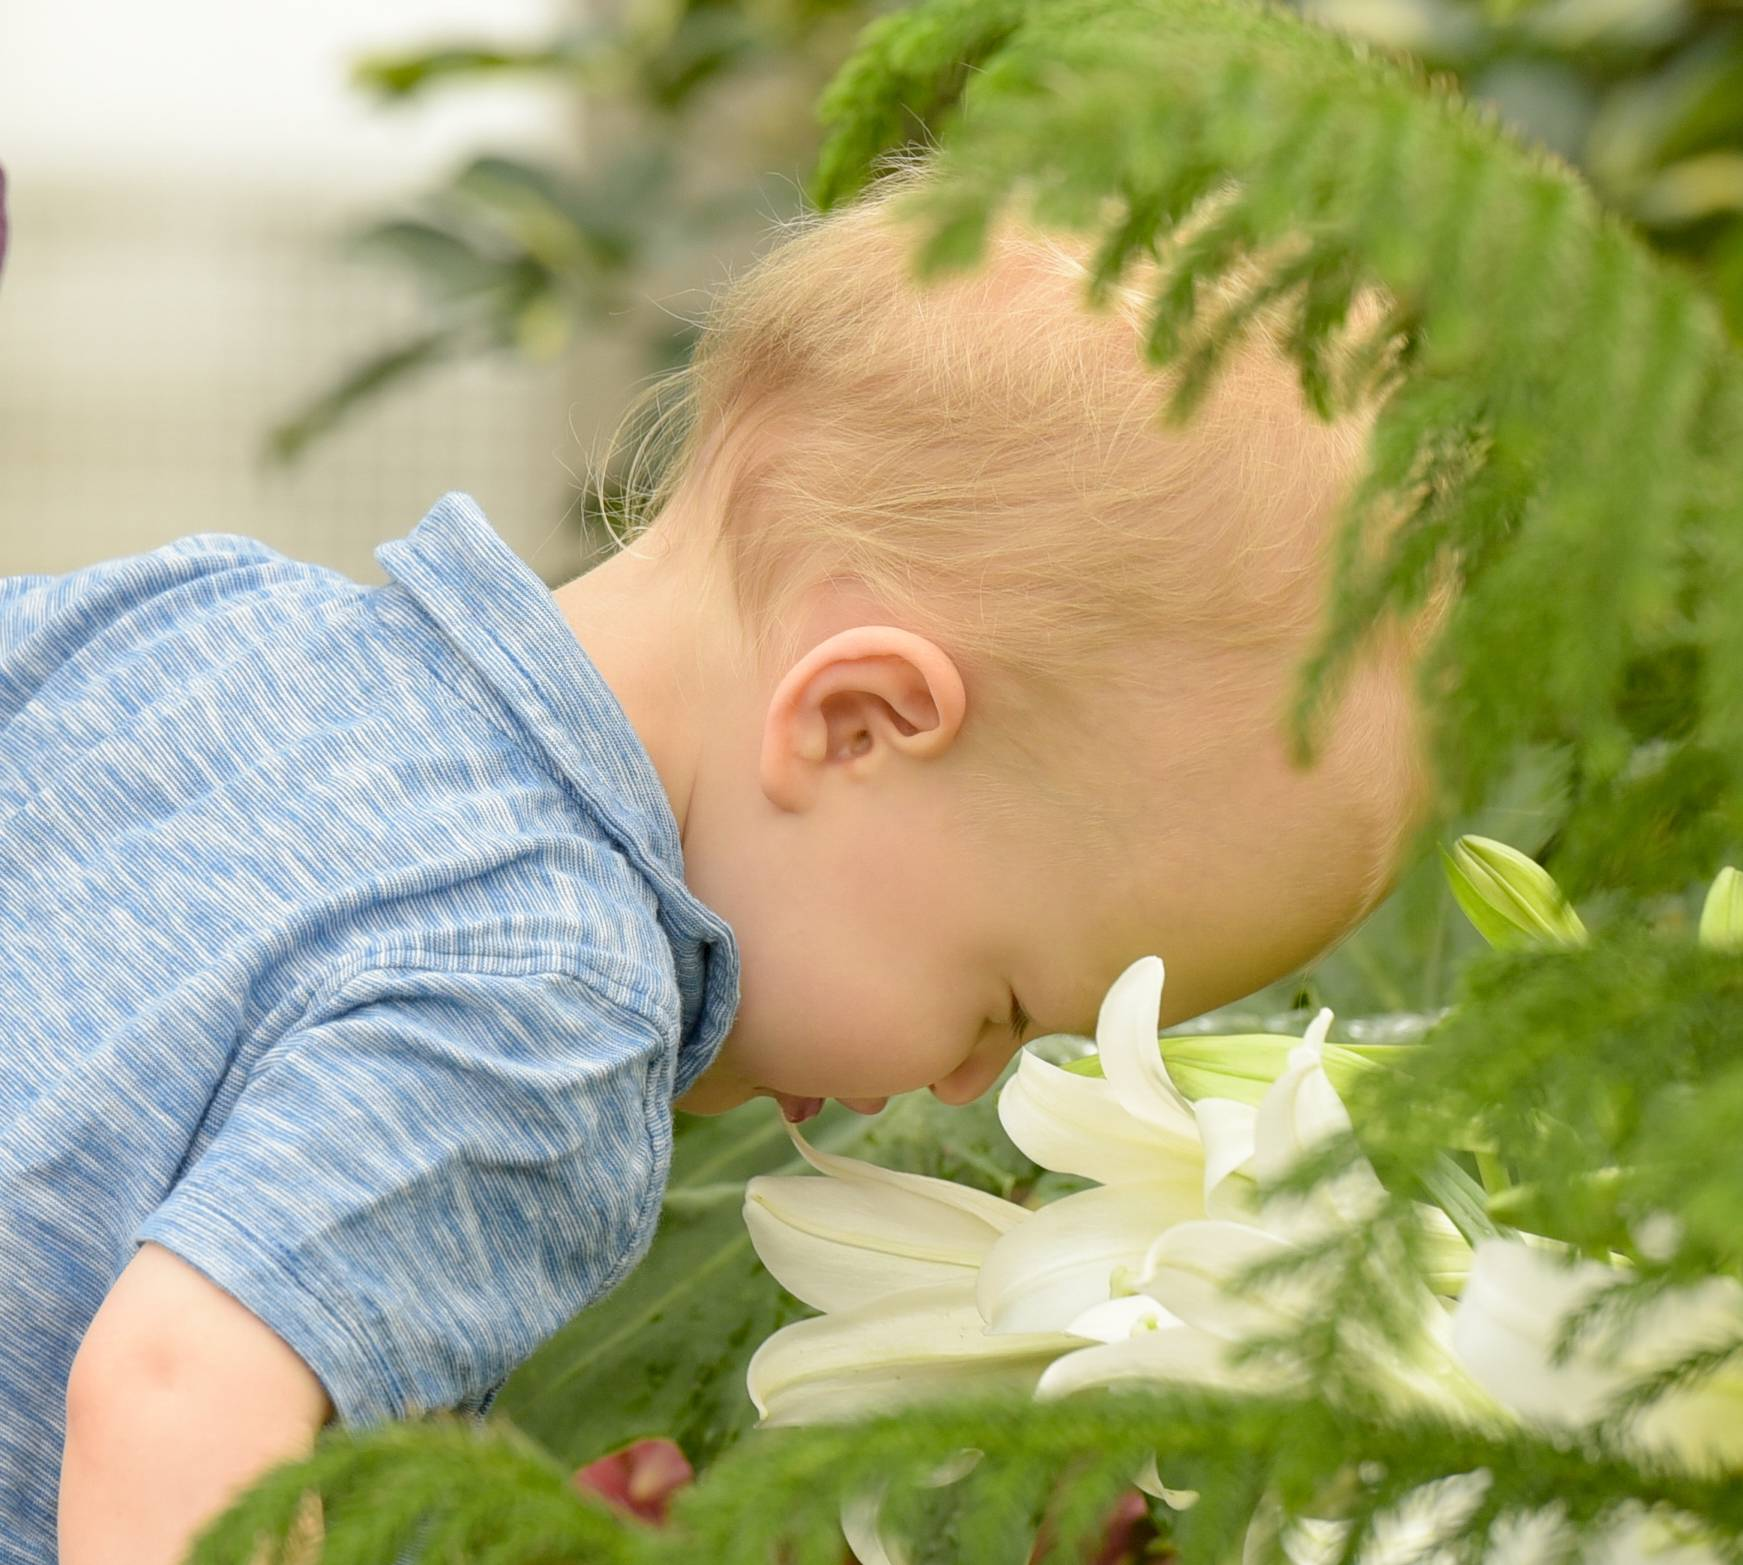 Graham Honold, 2, of Elmhurst smells the flowers Sunday as he visits the Elmhurst Park District's Wilder Park Conservatory with his mom, Sarah Honold.